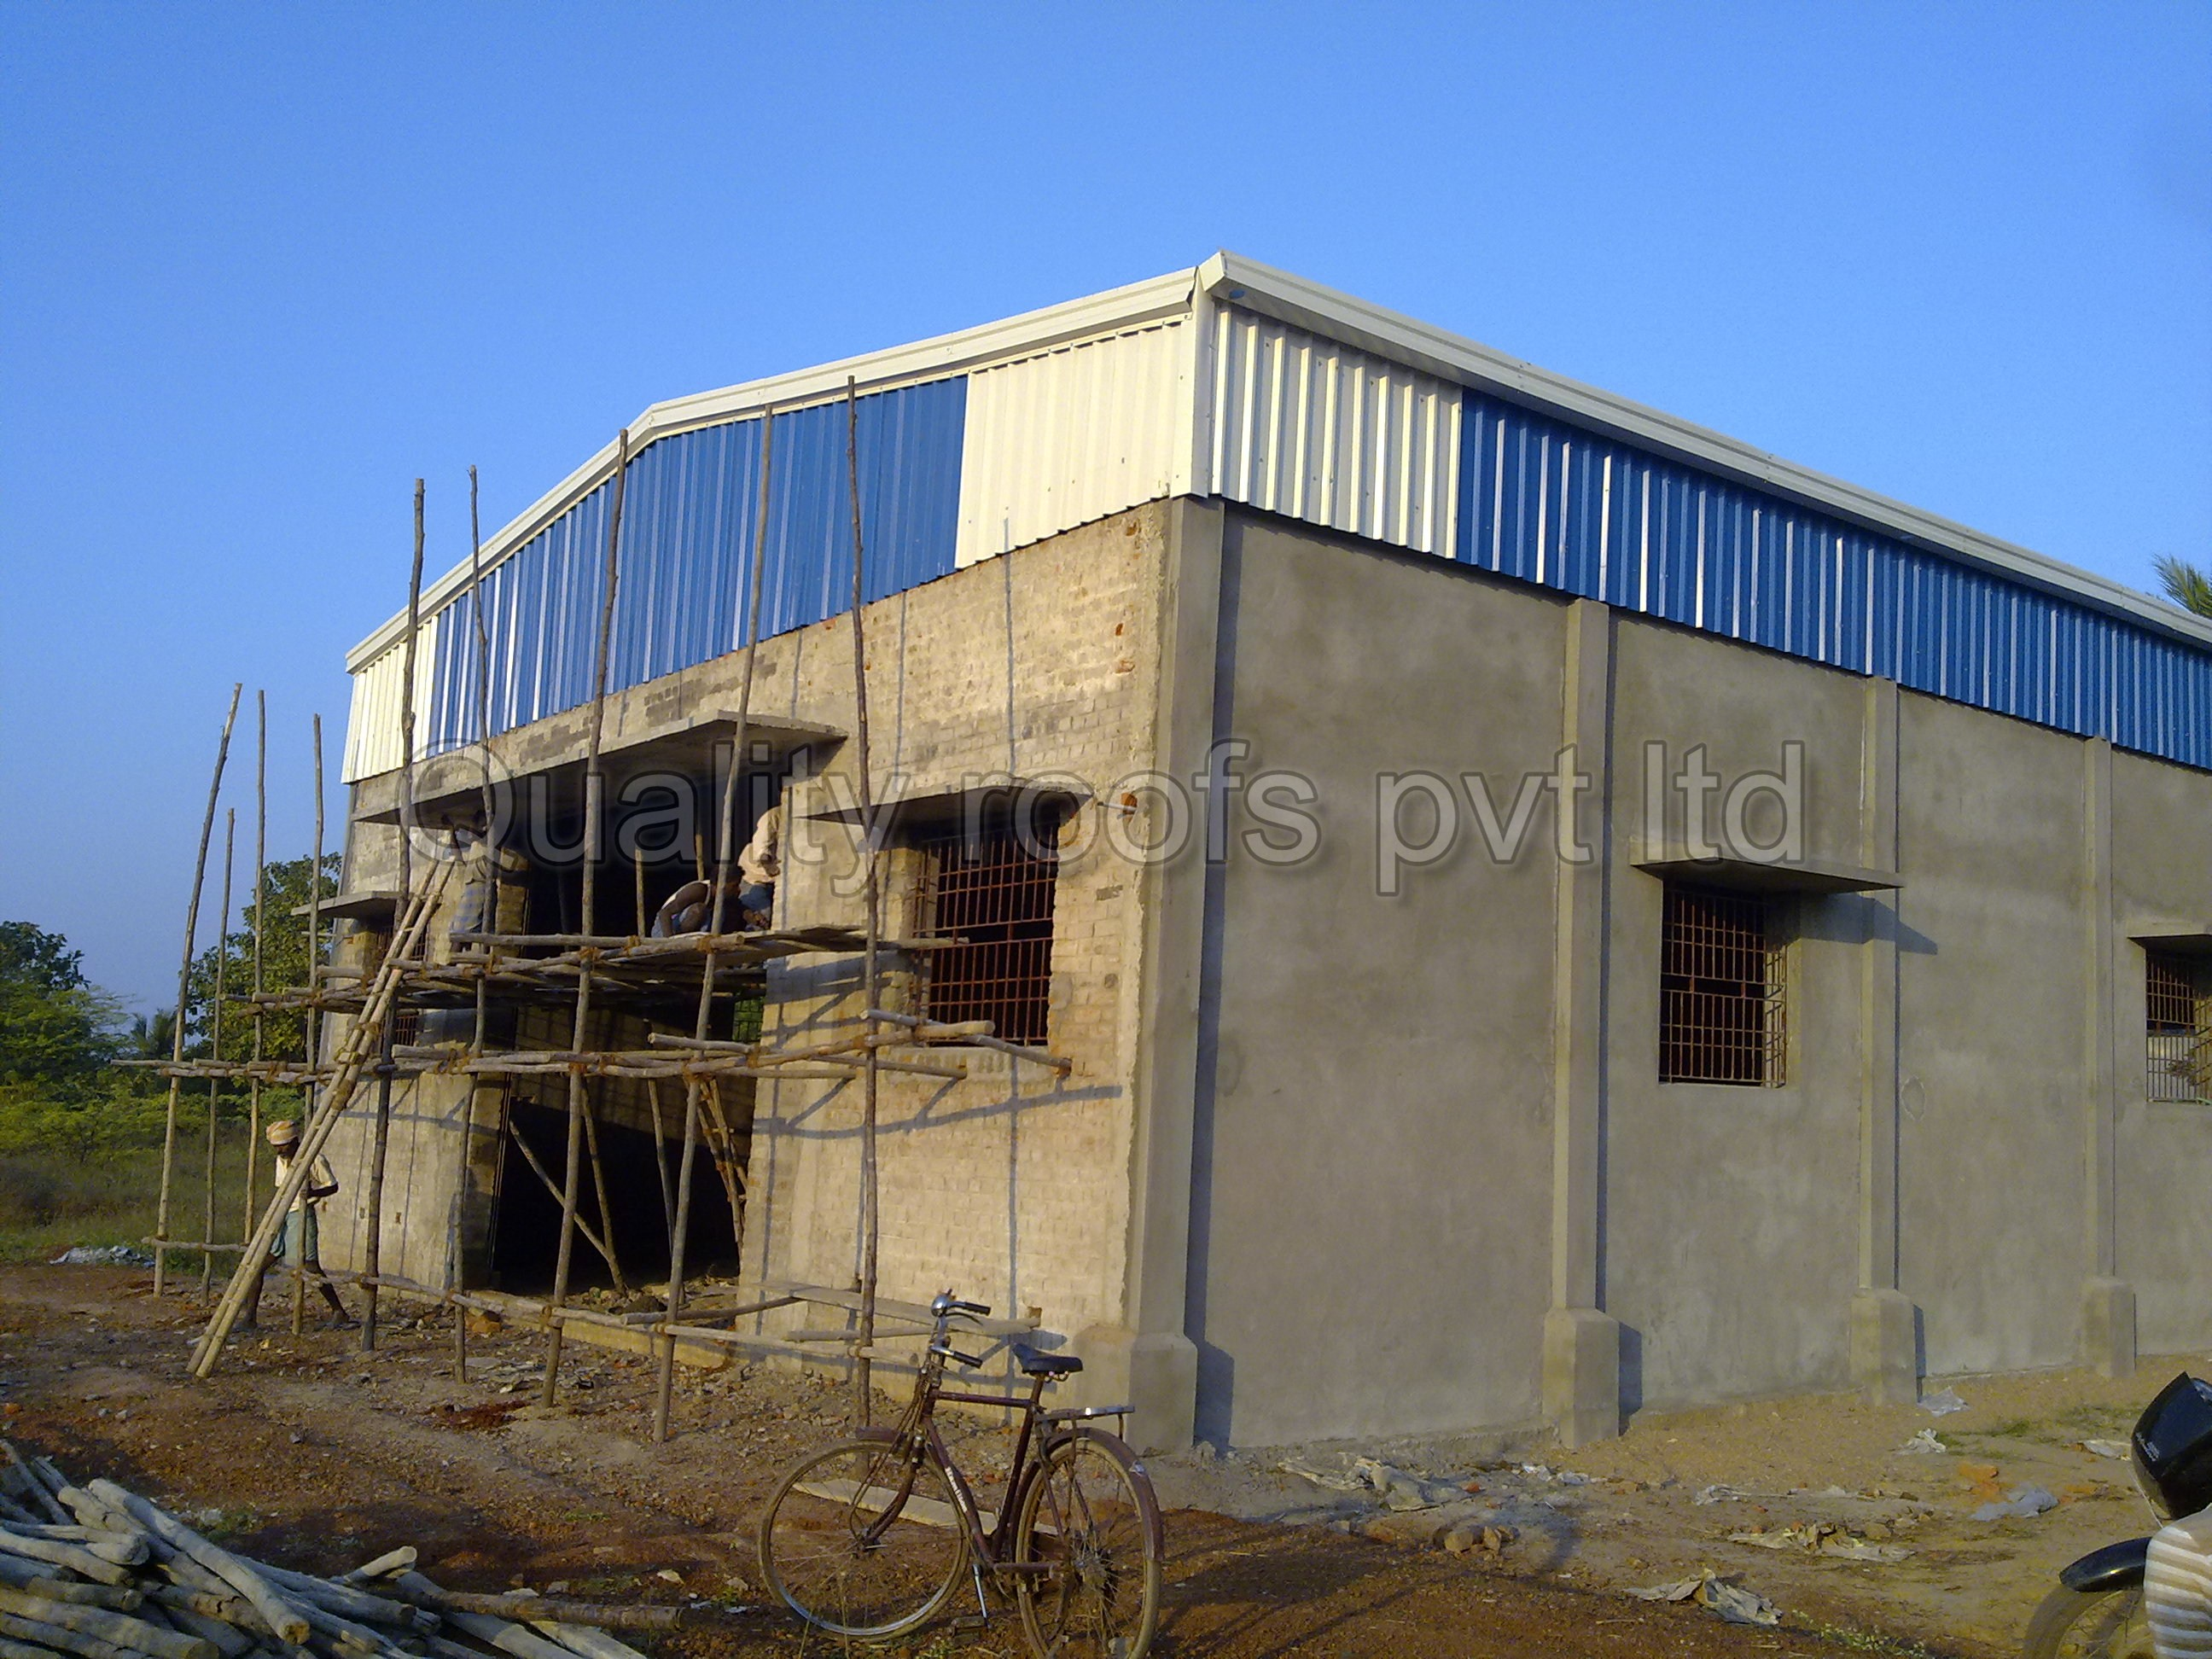 Quality Roofs Pvt Ltd, Metal Roofing Constructions In Chennai,Industrial Roofing Contractors In Chennai,Terrace Roofing Contractors In Chennai,Metal Roofing Contractors In Chennai